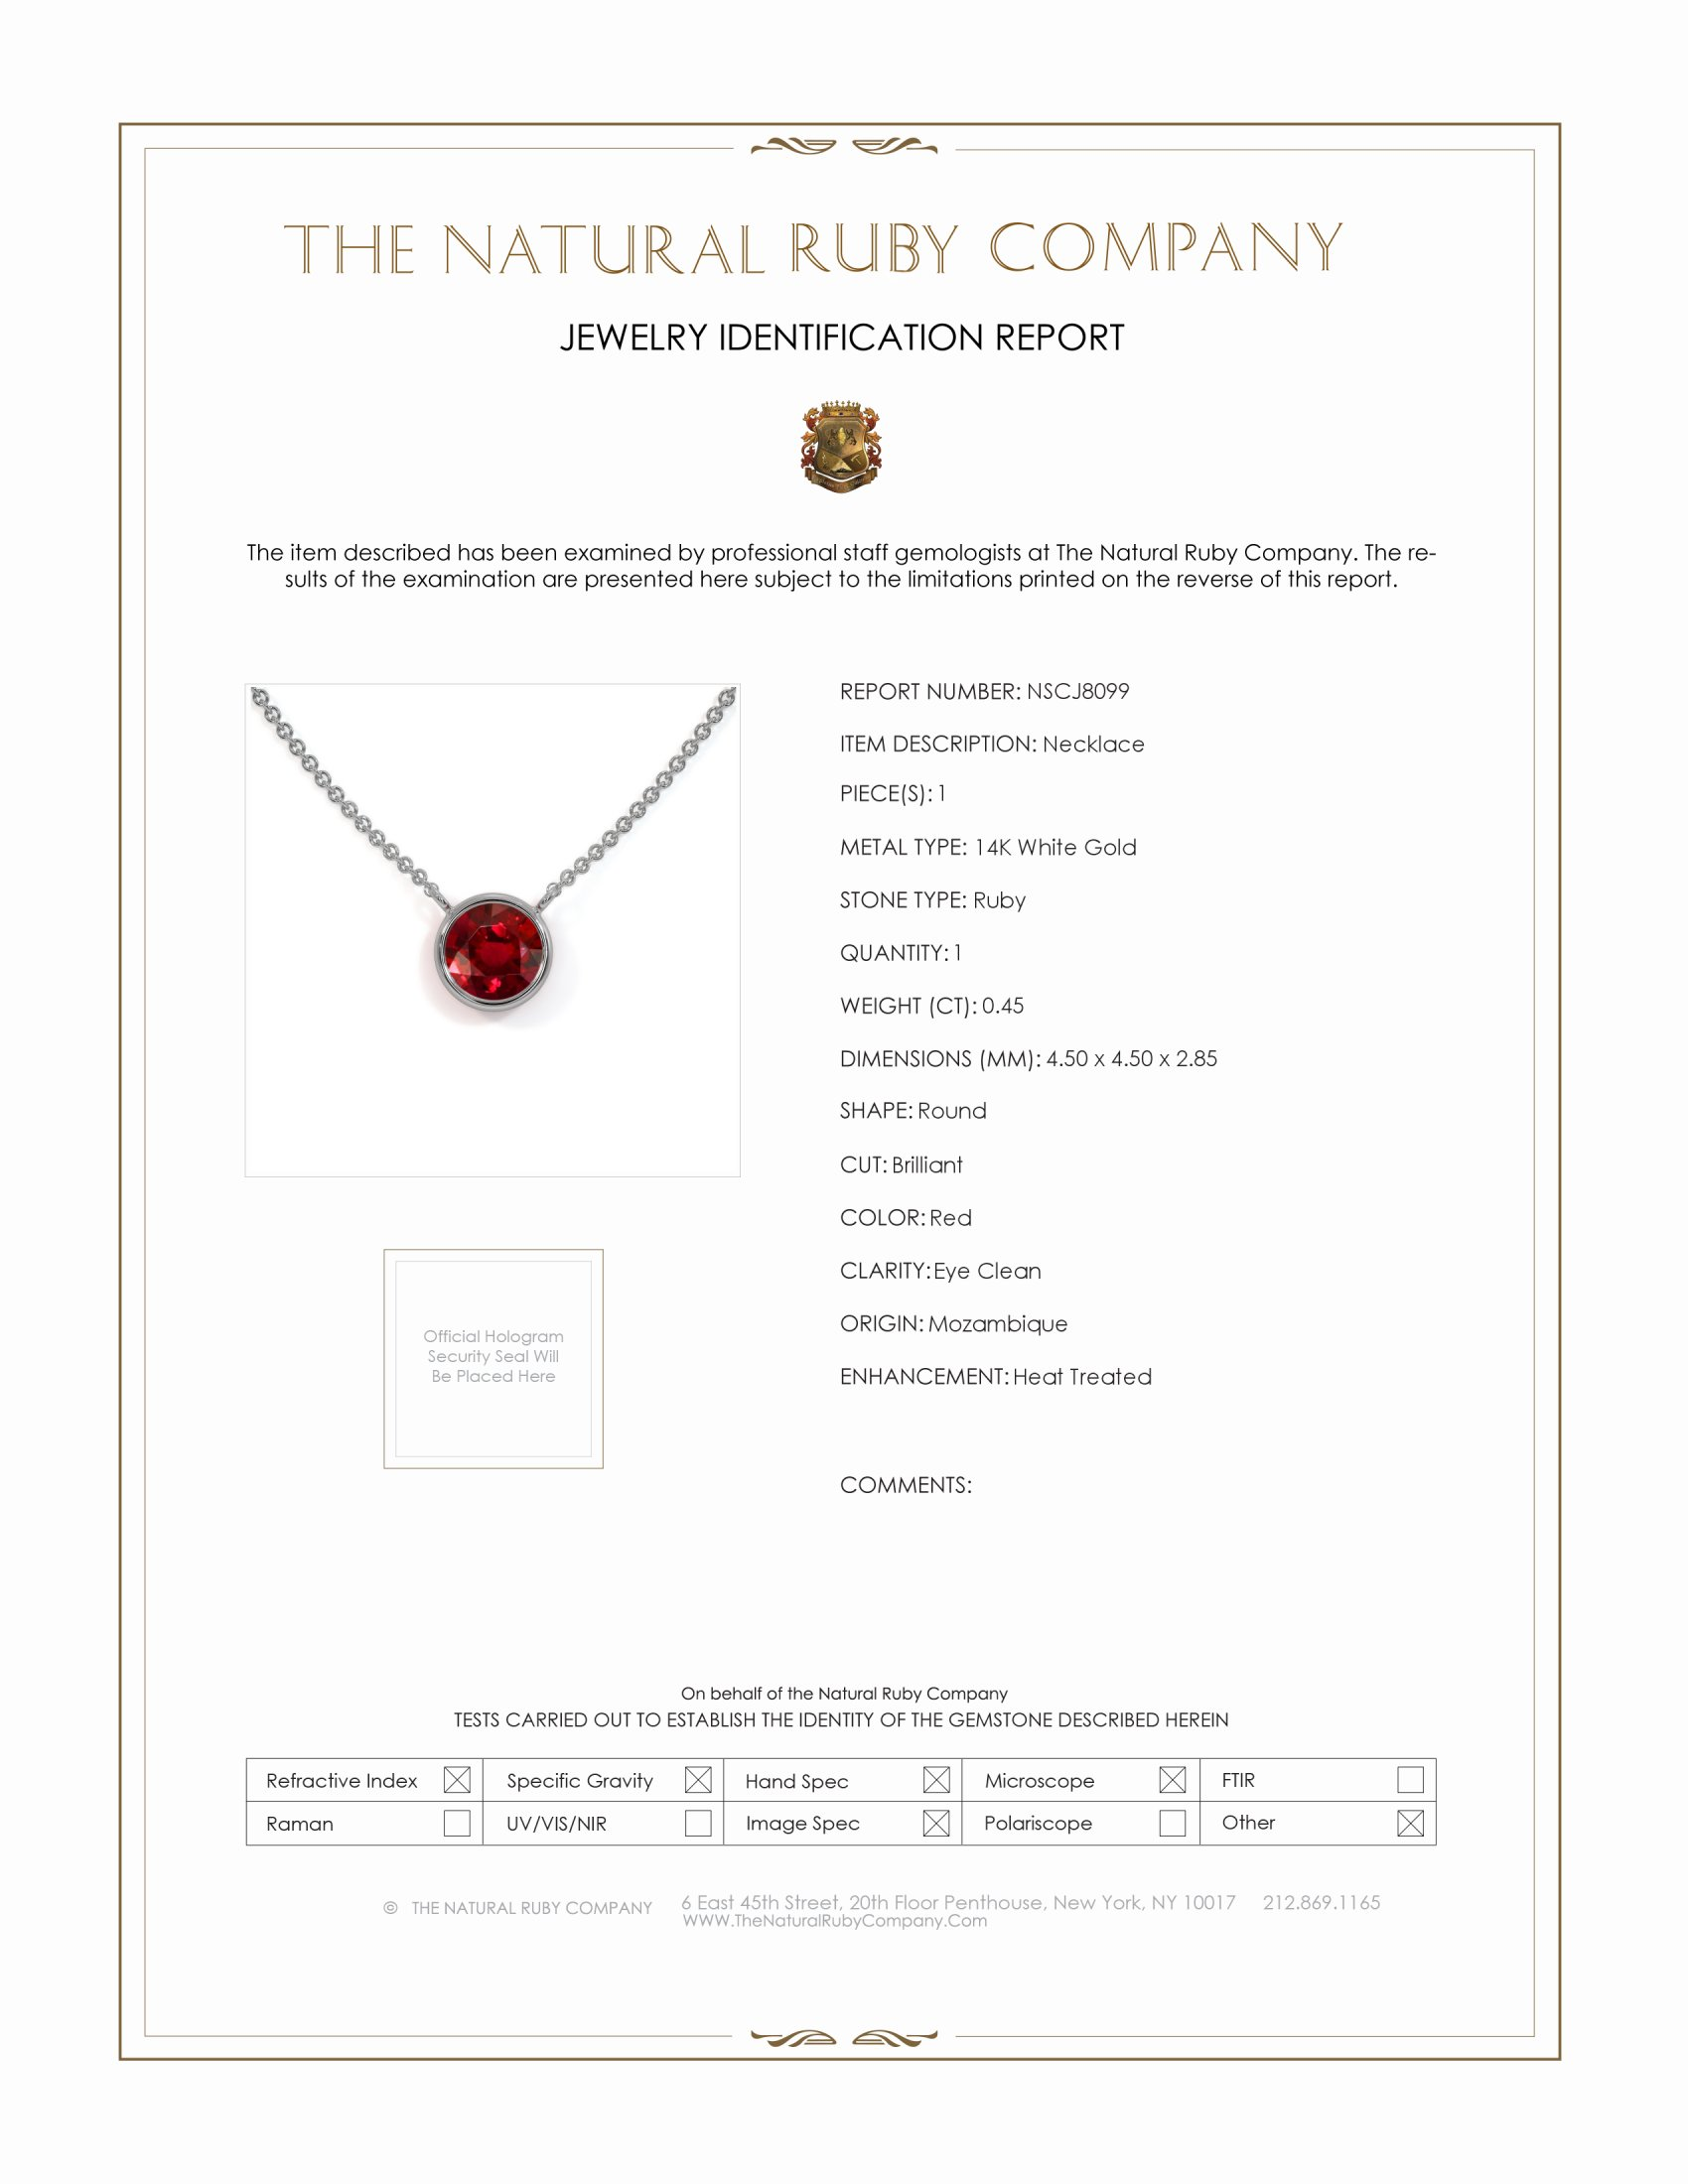 0.45ct Ruby Necklace Certification